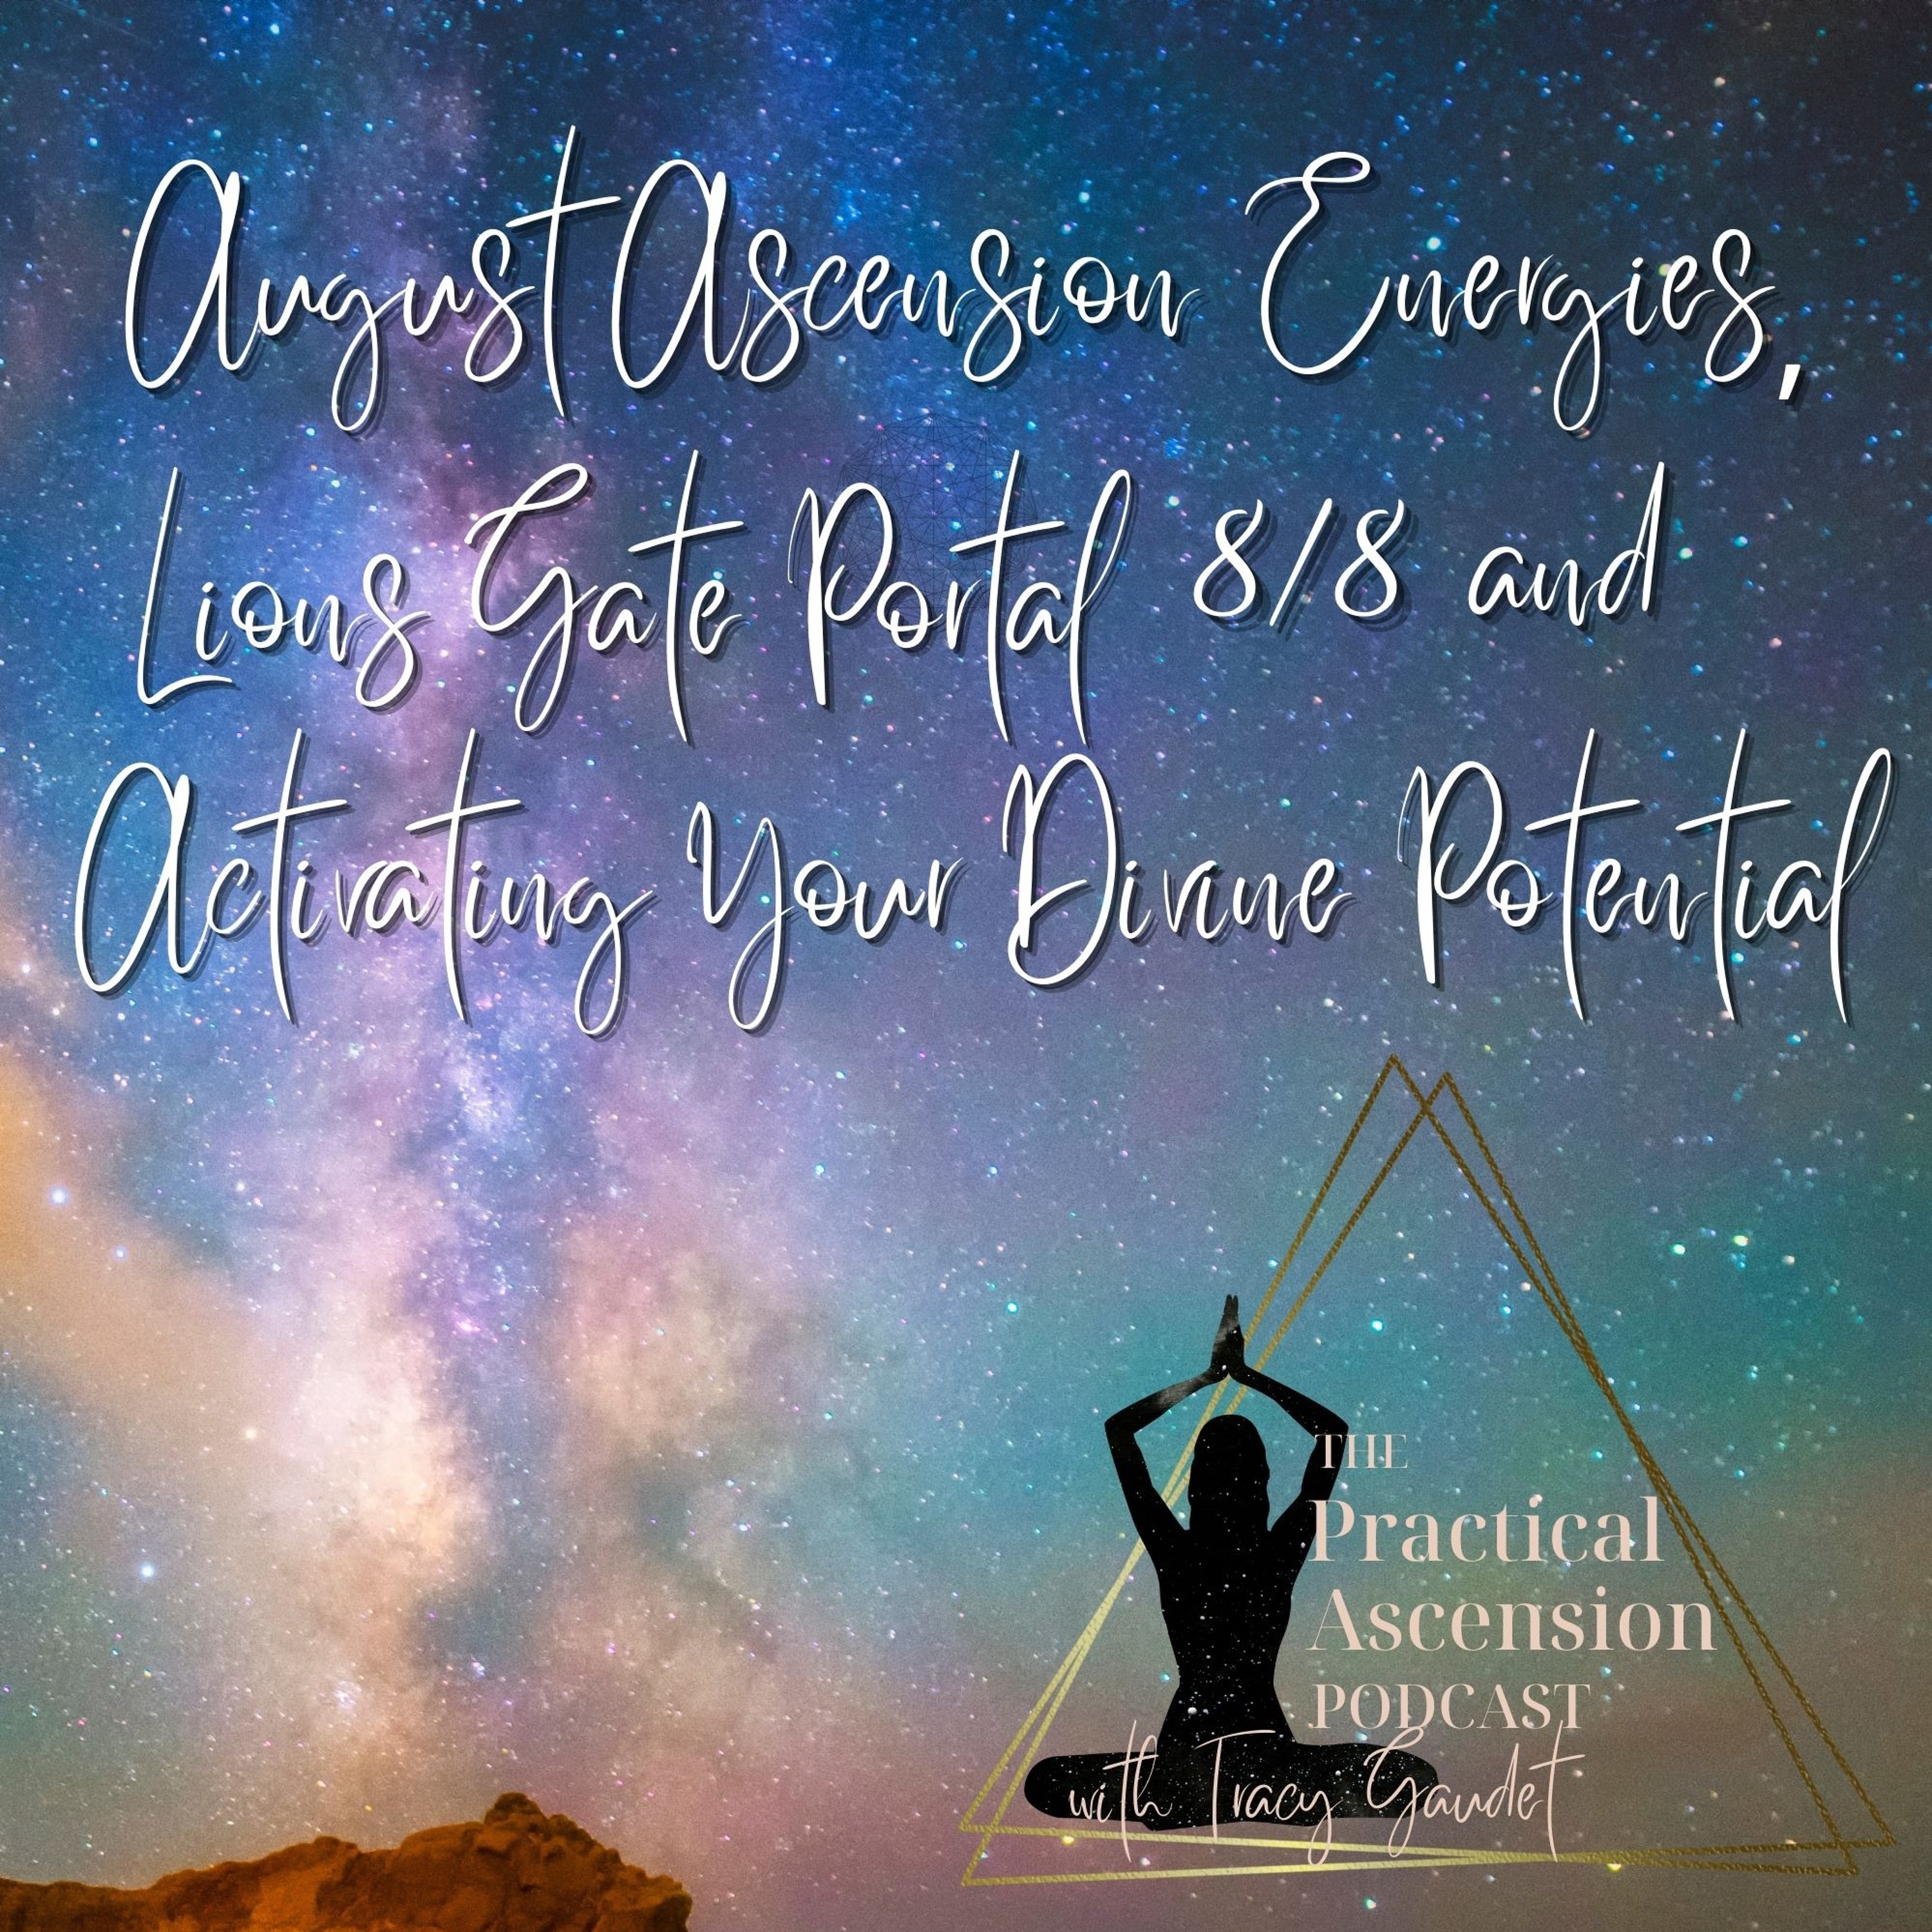 August 2021 Ascension Energies, Lions Gate 8/8 Portal and Activating Your Divine Potential